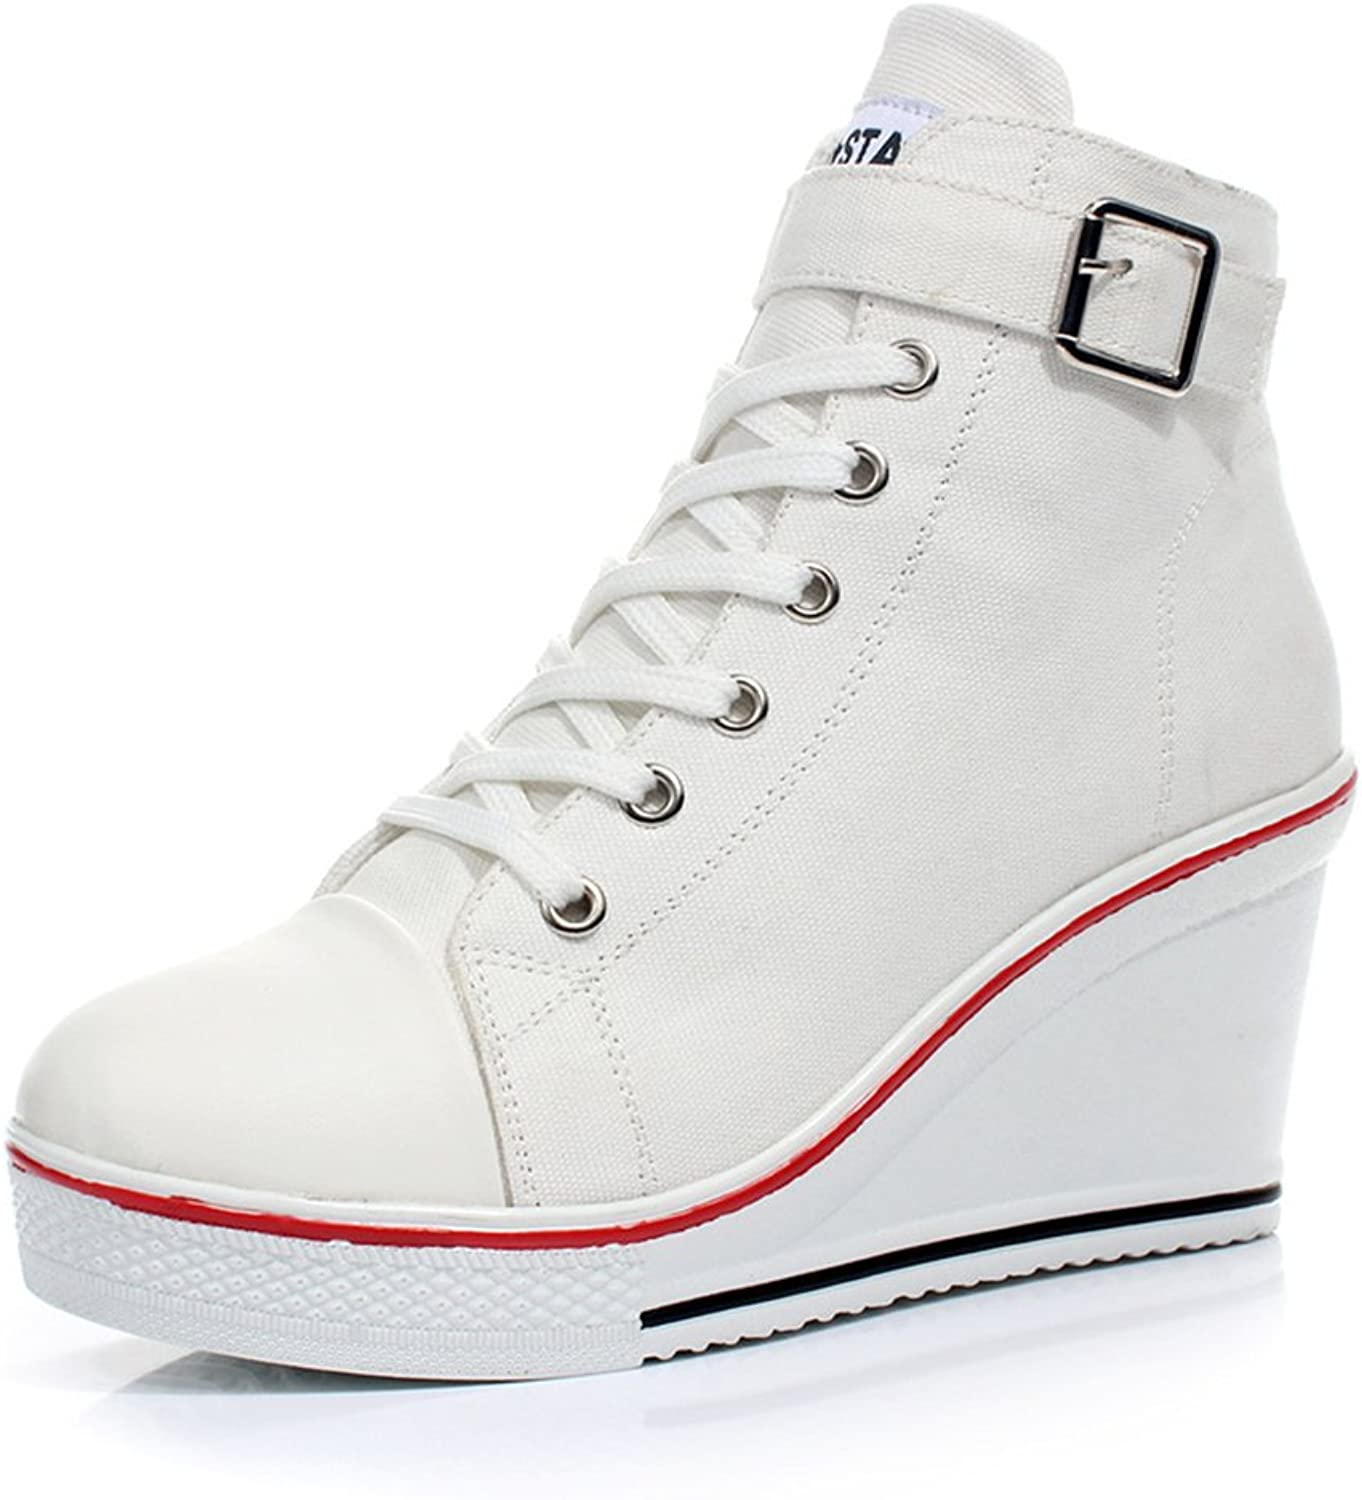 Excellent.c New Classic White Canvas shoes Spring and Summer Casual lace shoes Fashion Breathable Student high Help shoes